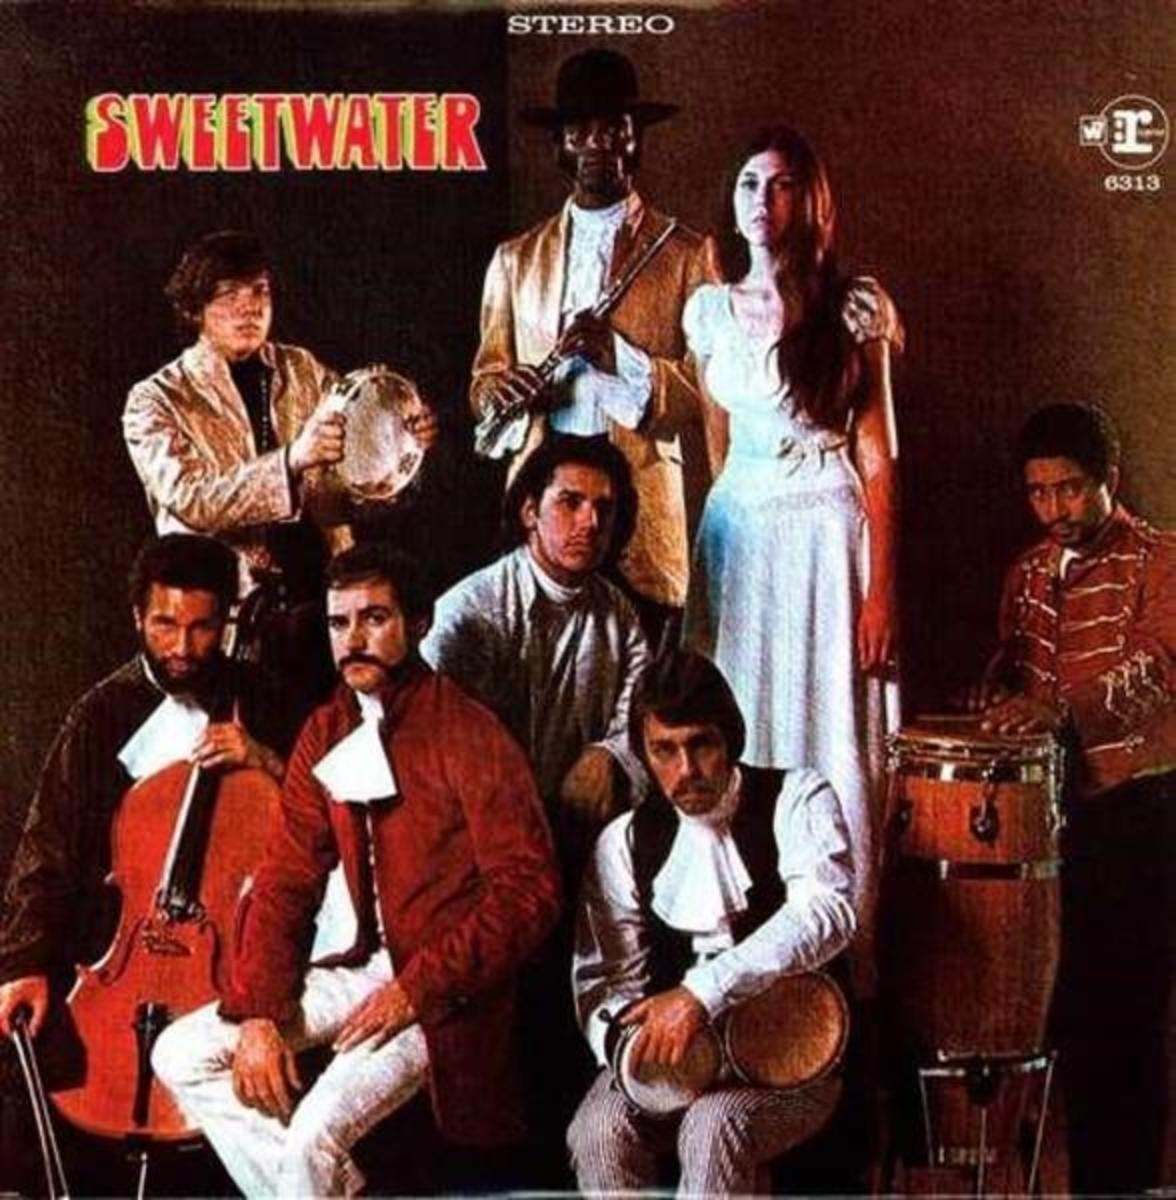 Photo of Sweetwater's self-titled LP